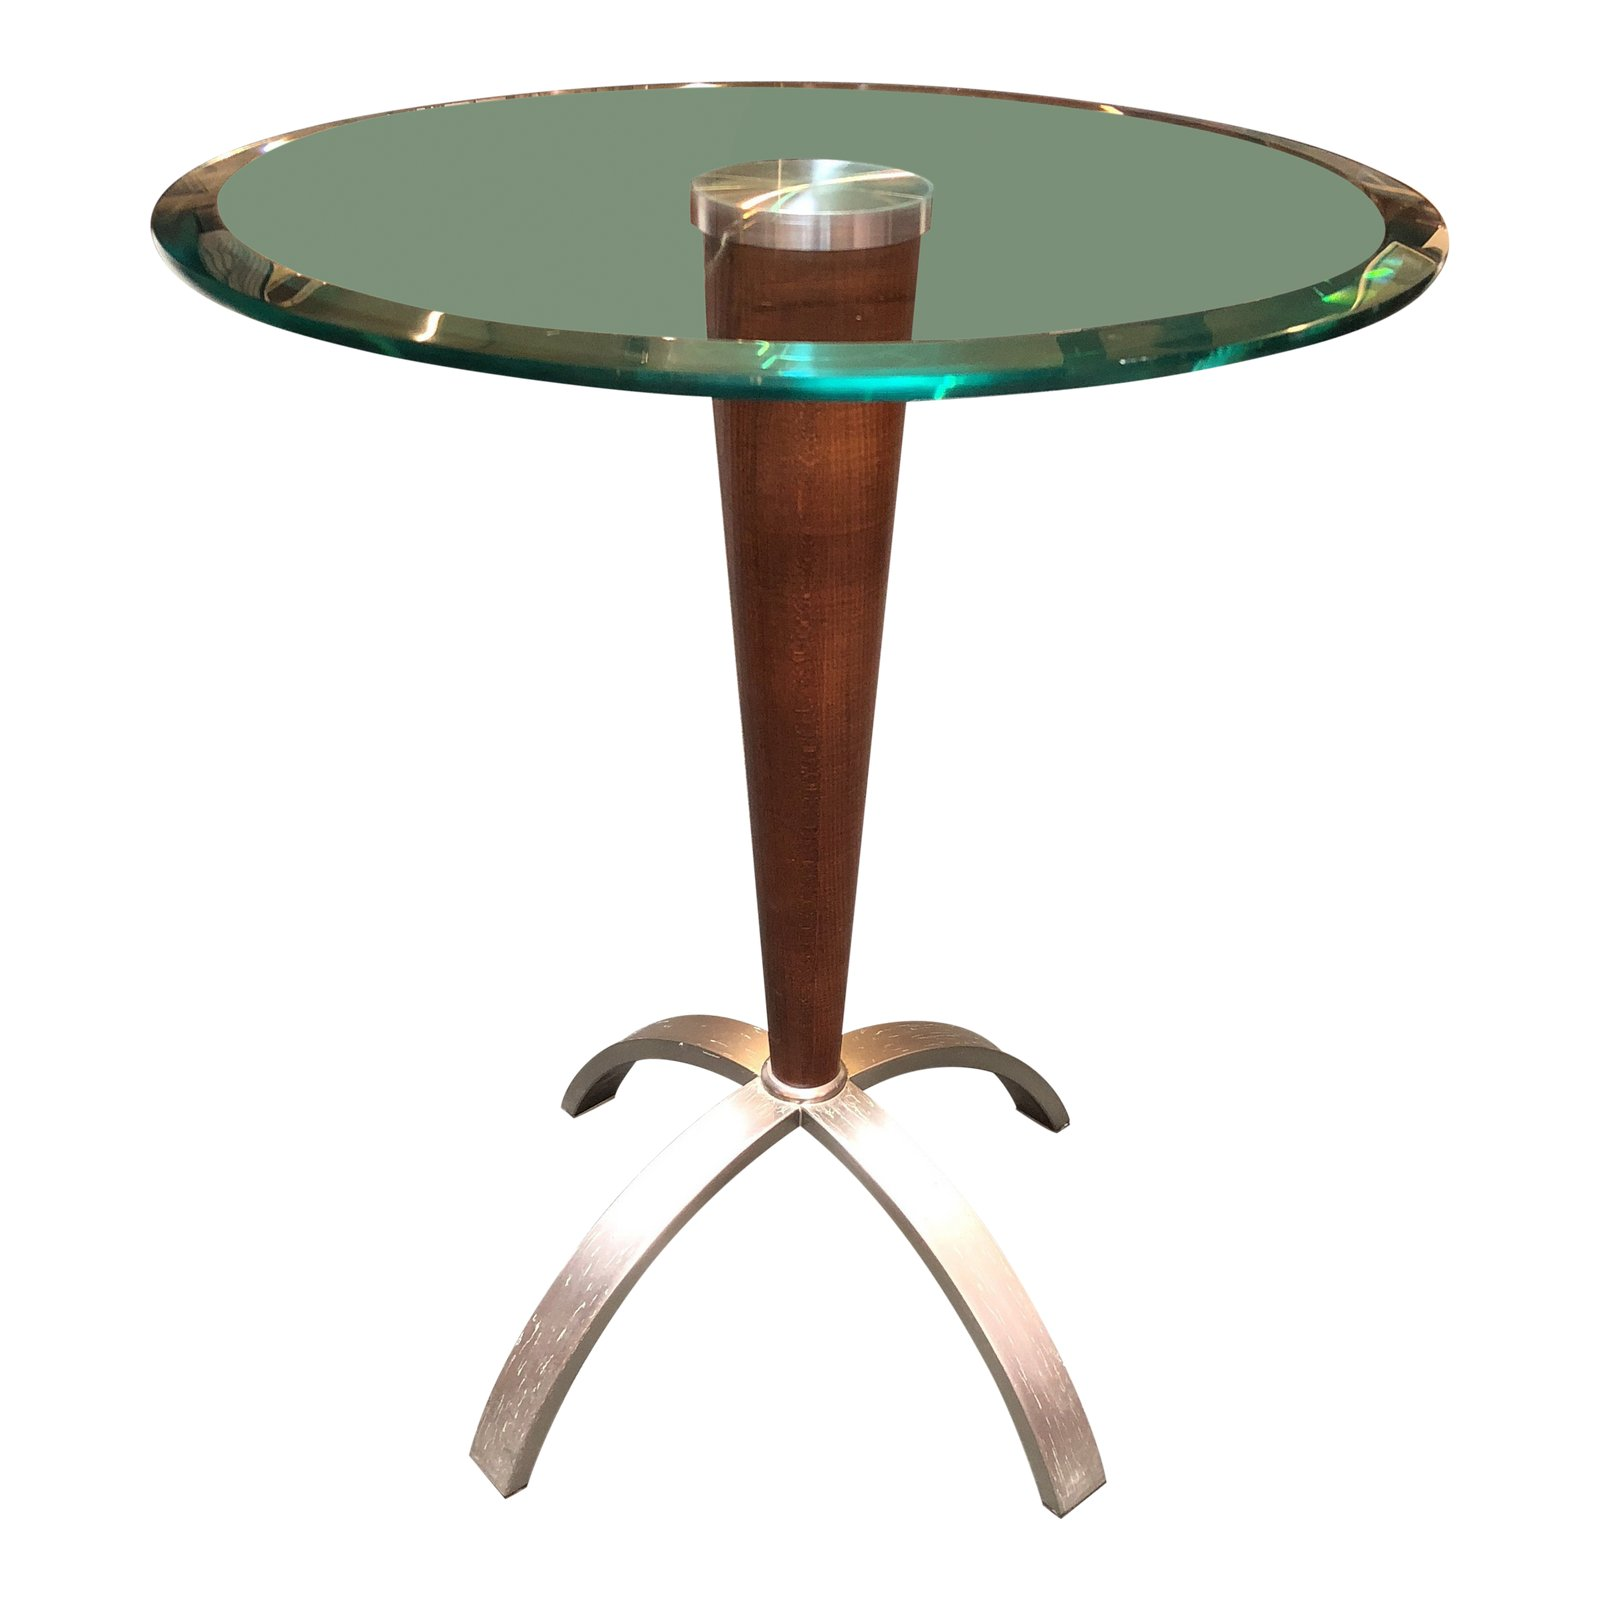 modern tapered wood steel glass top accent side table design and round tablecloth koncept lighting sofa for small space living room canadian tire patio matching bedside tables